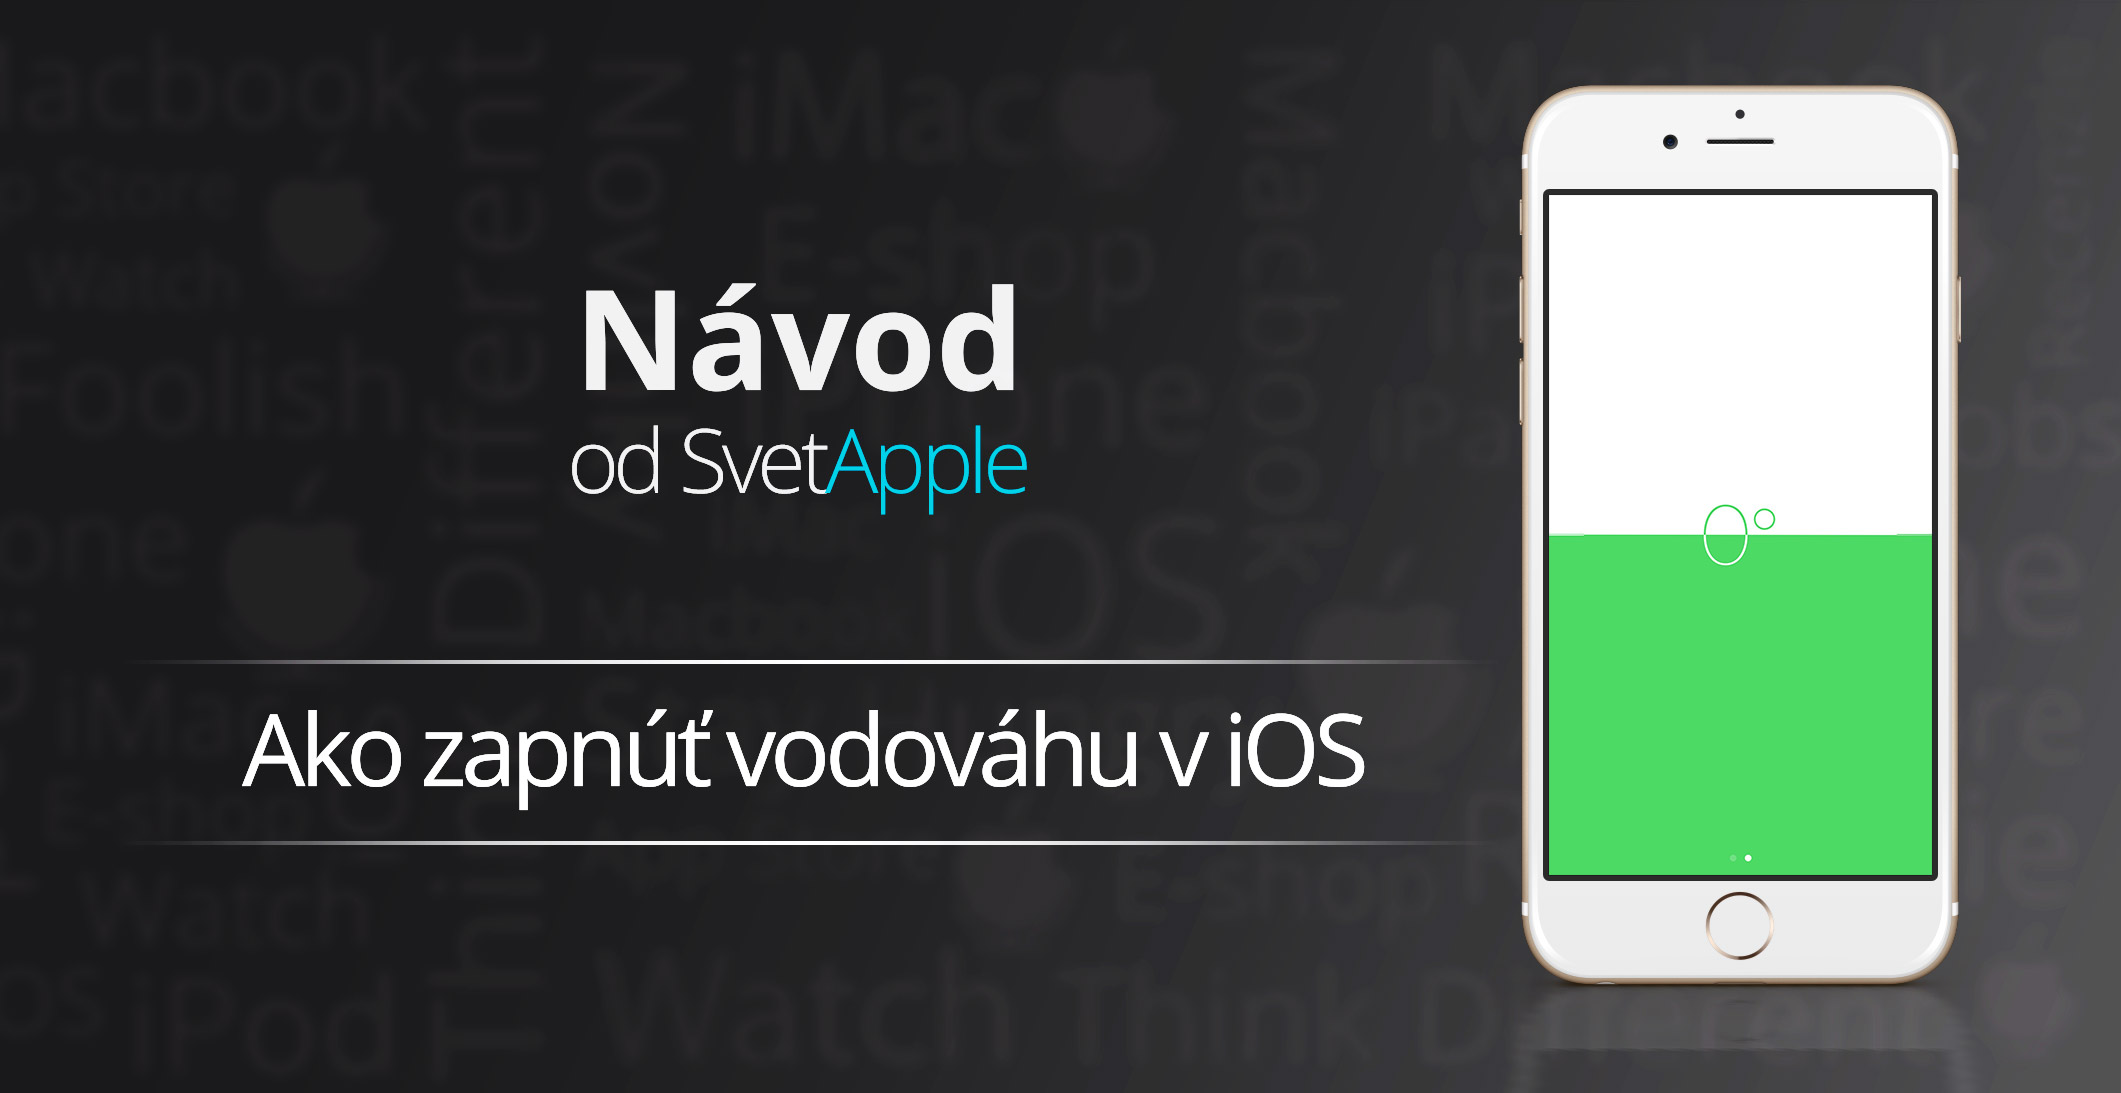 navod-iphone-vodovaha-SvetApple